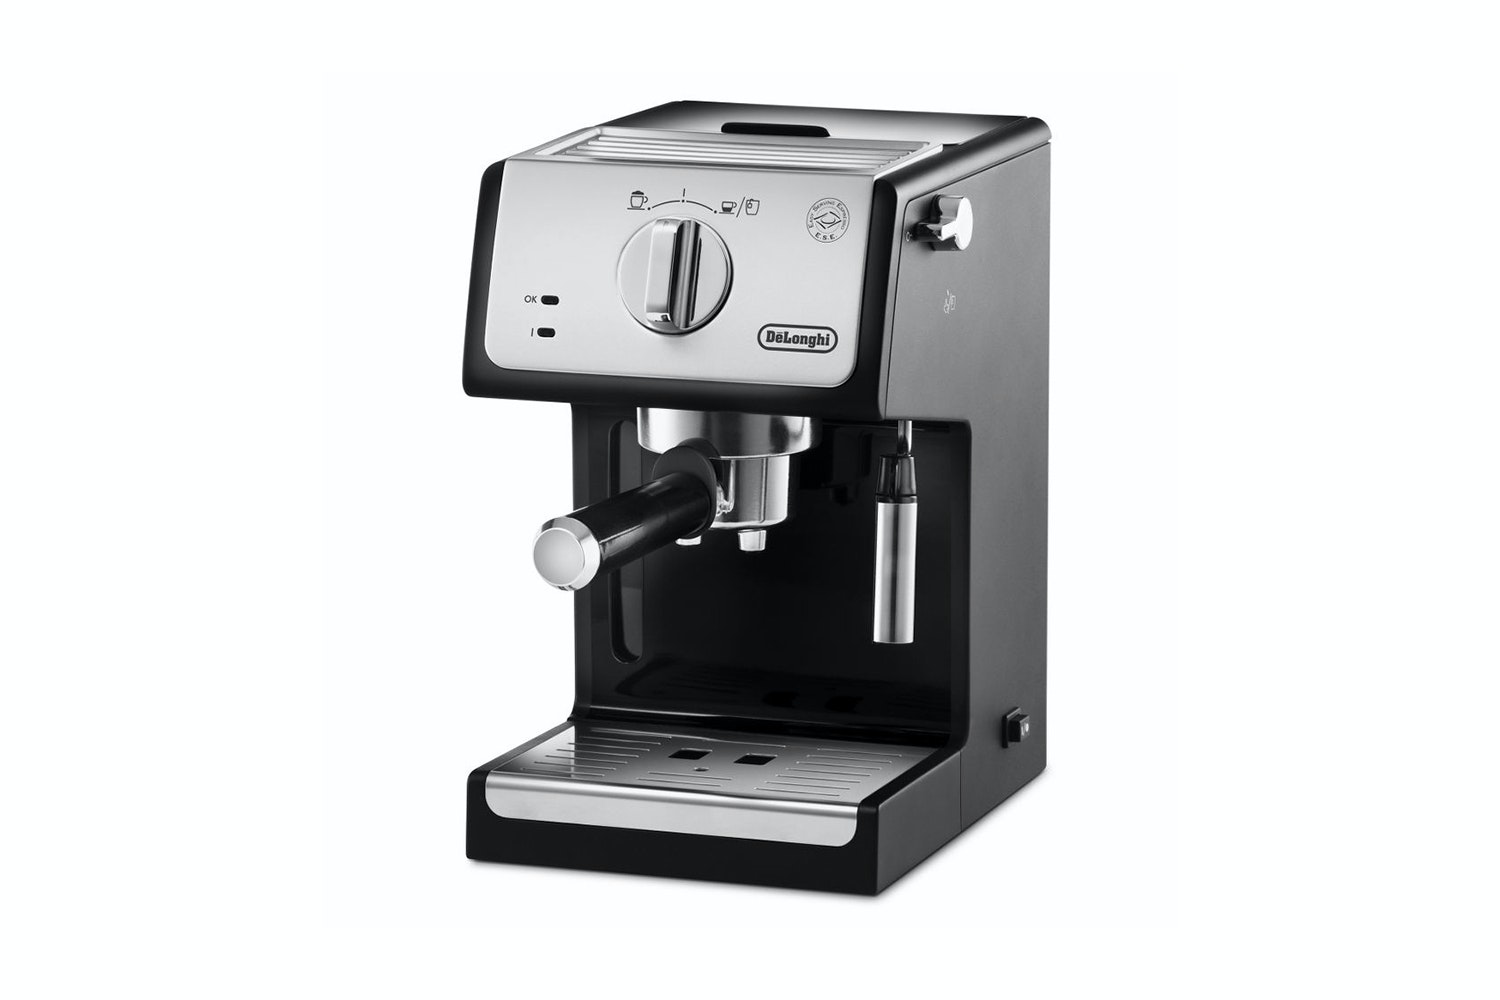 coffee machine deals nz